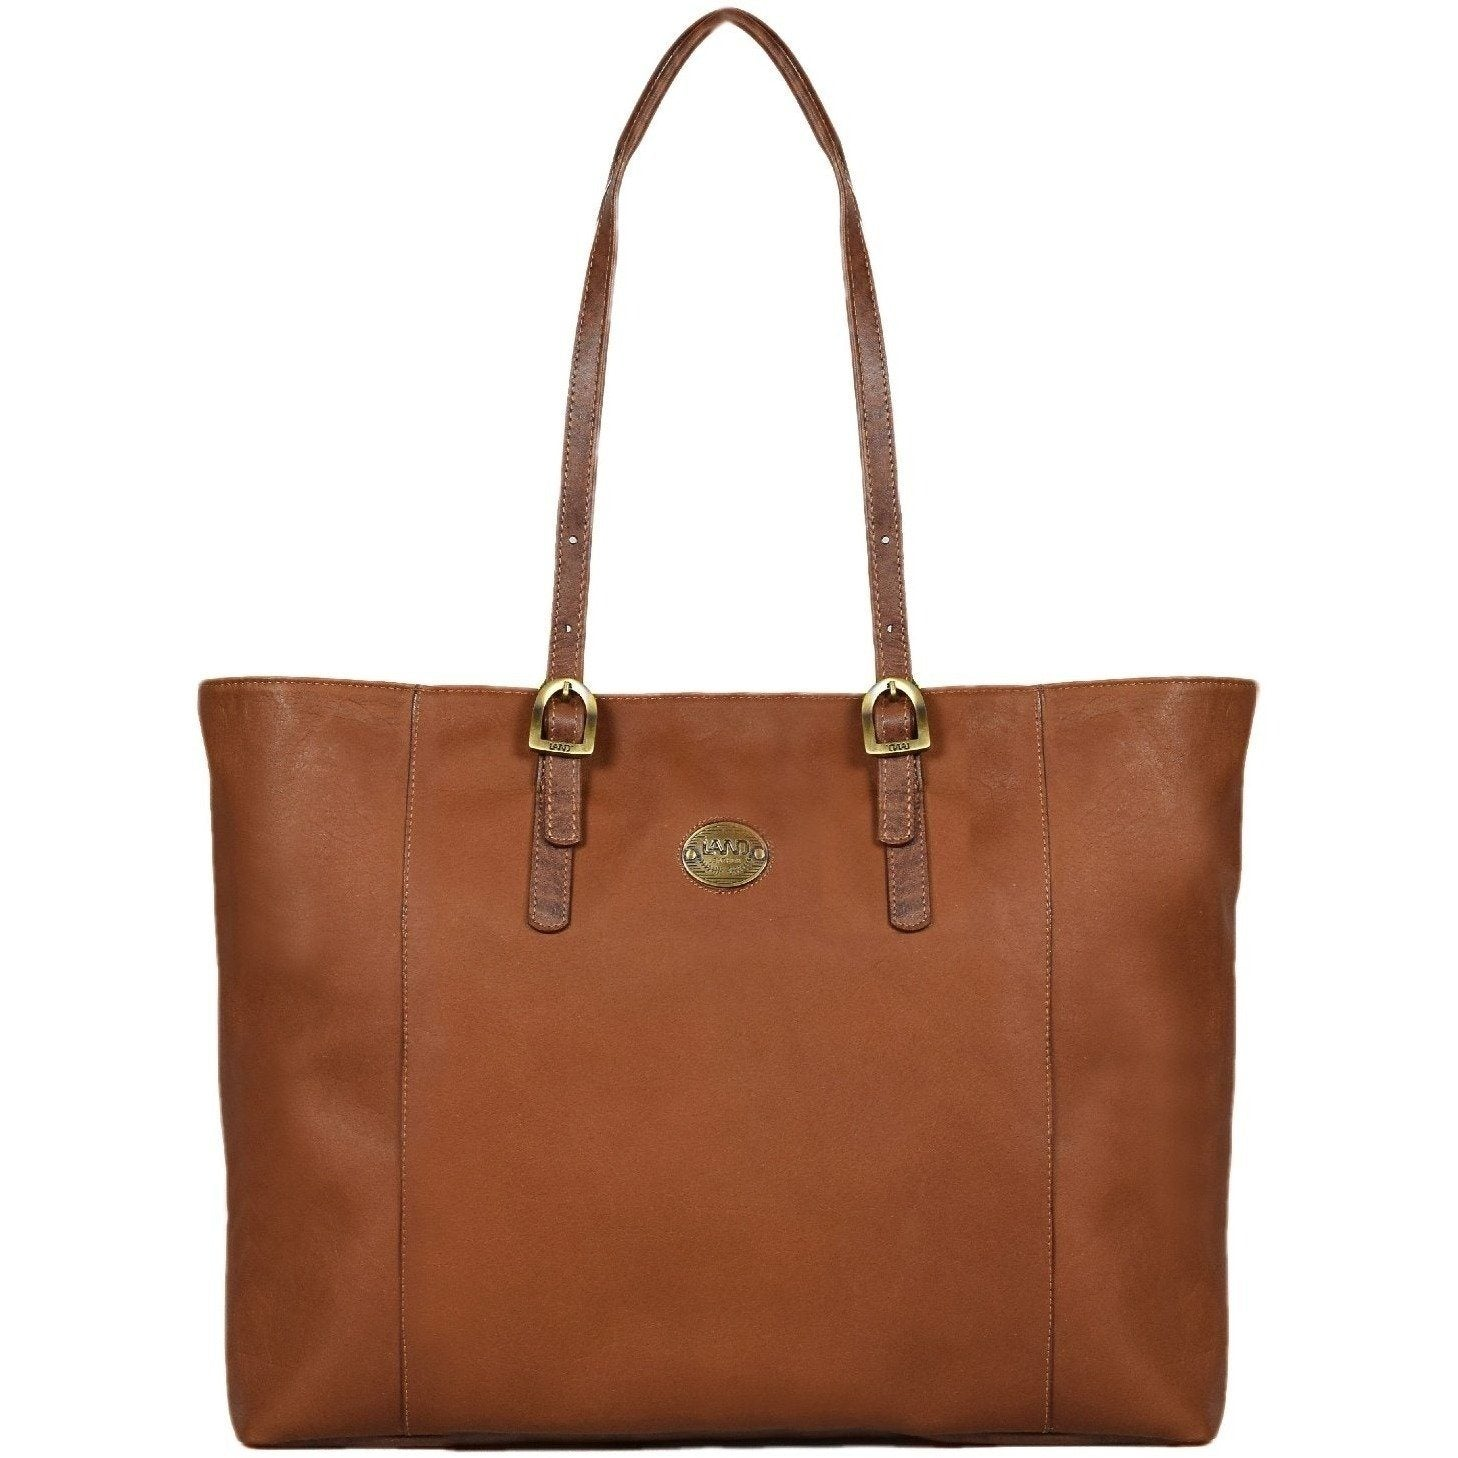 Santa Fe Cleopatra Shopper, Handbag | LAND Leather